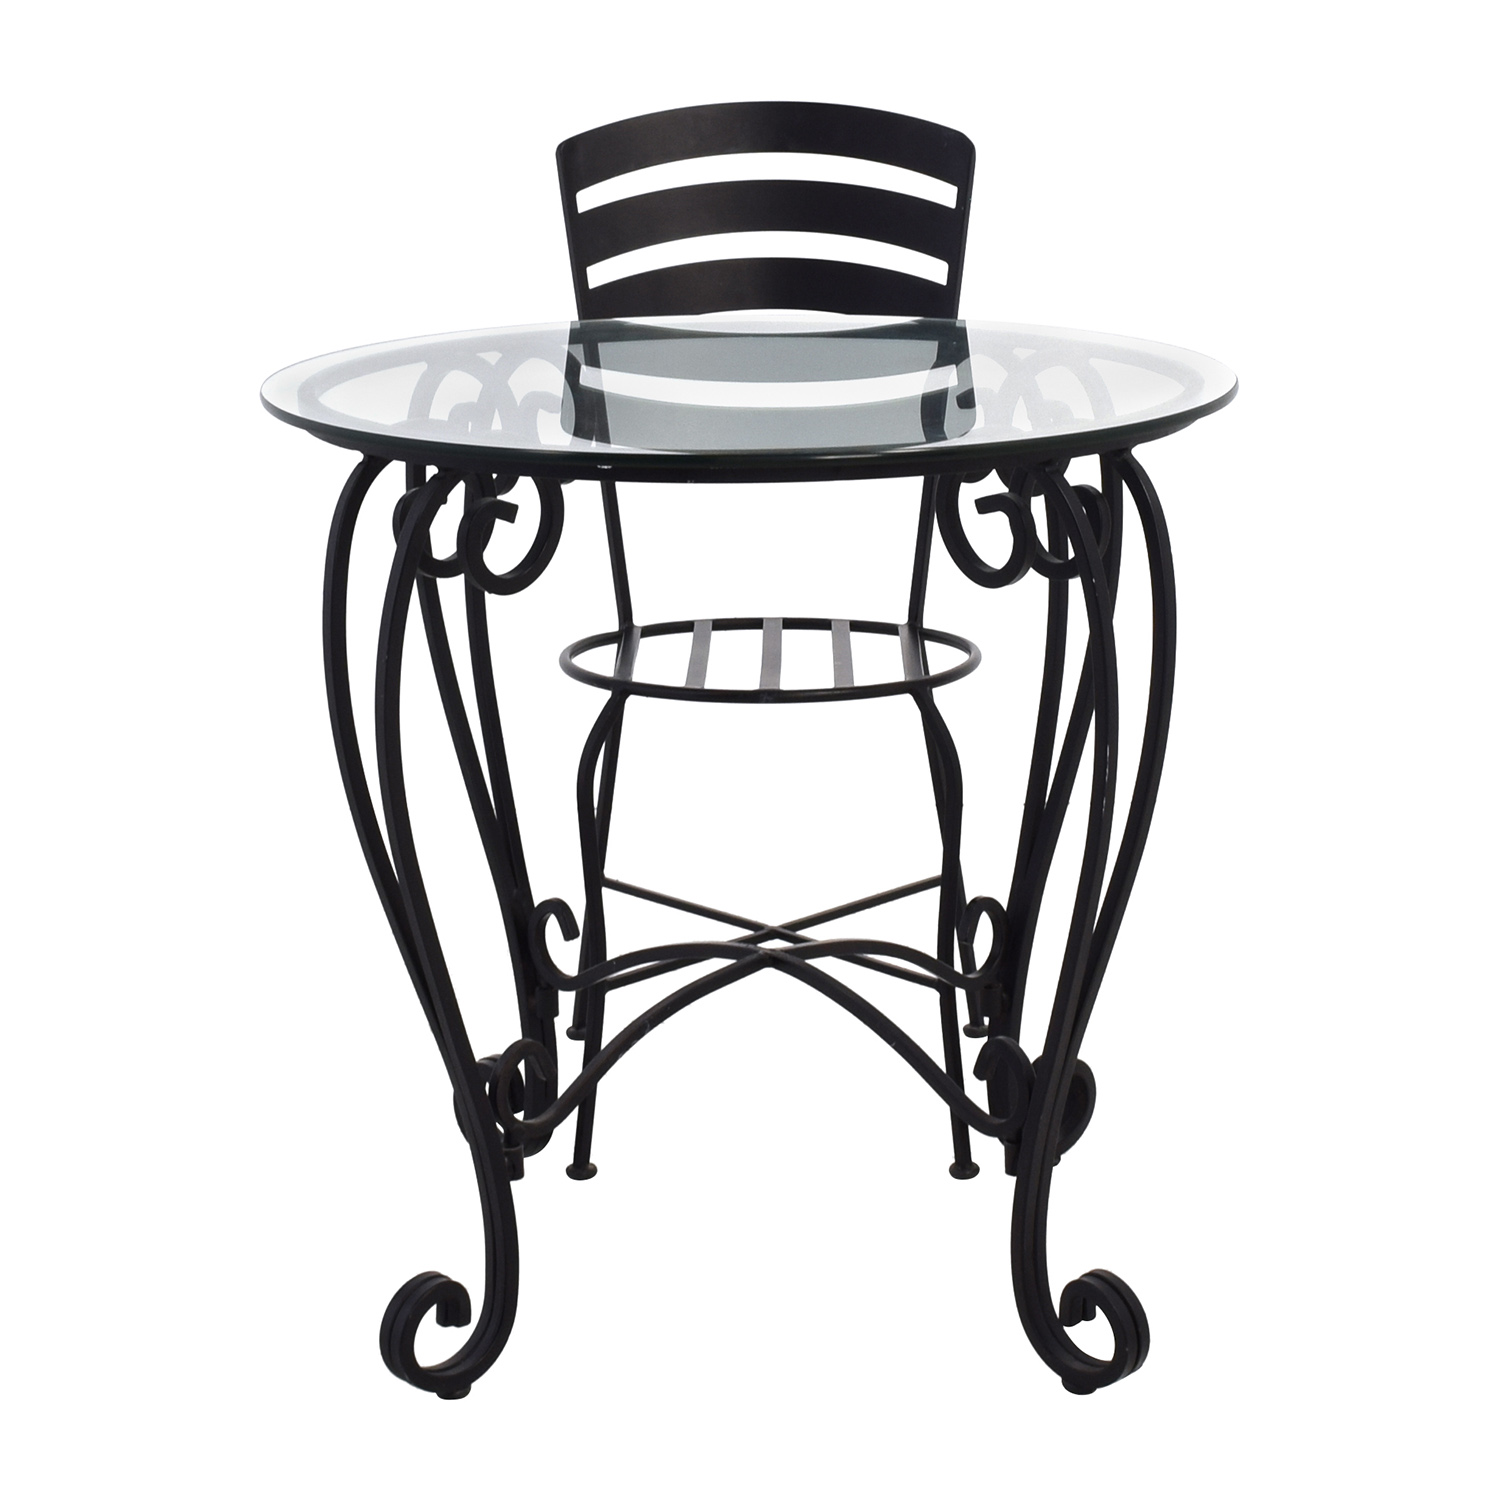 482d303789f3 71% OFF - Wrought Iron Round Glass Top Breakfast Table   Tables